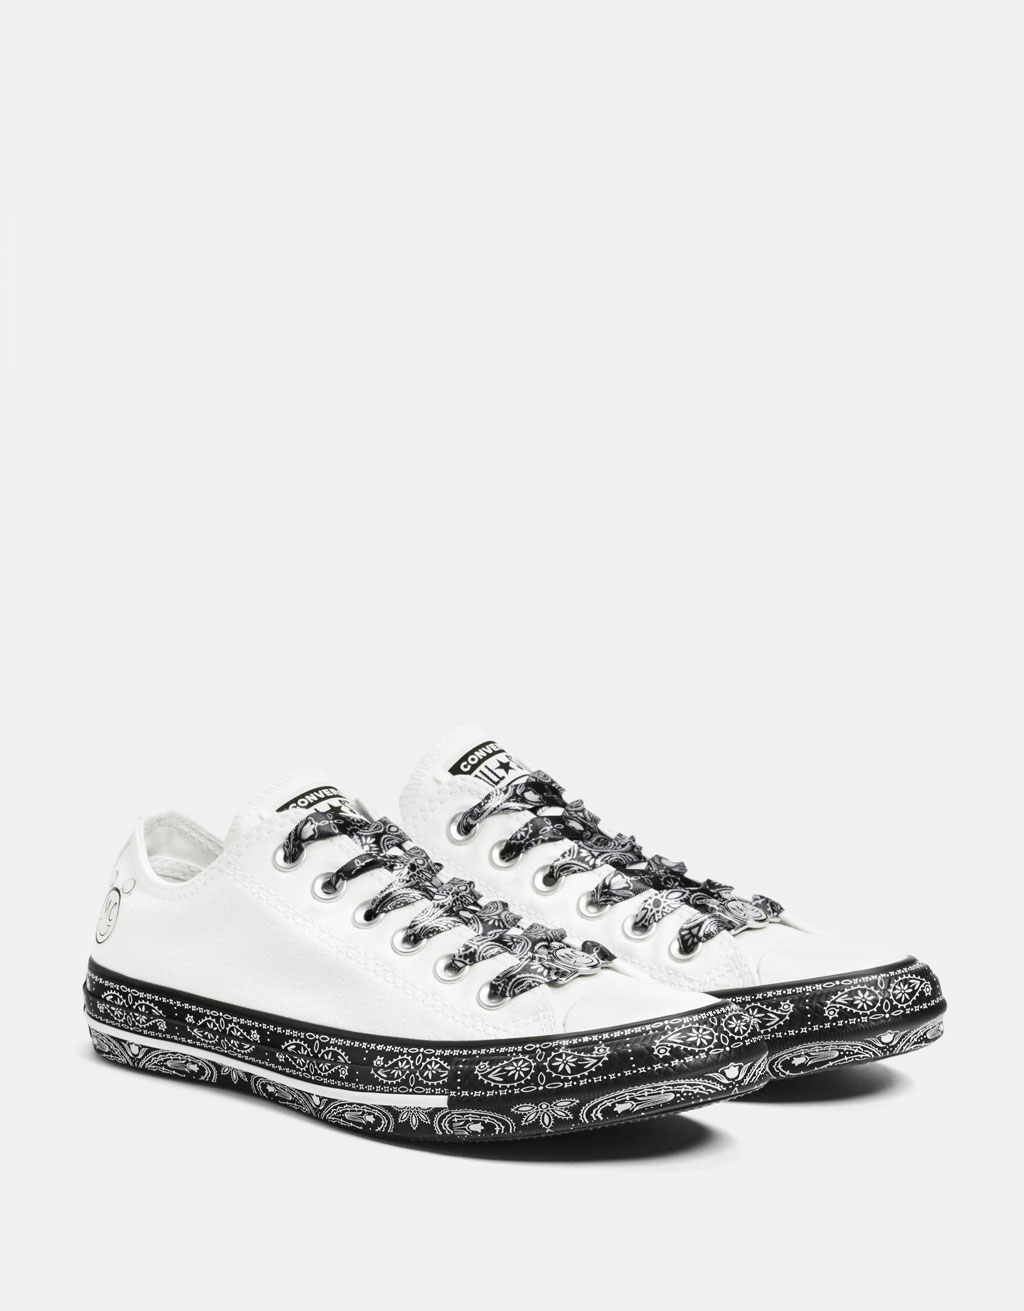 MILEY CYRUS X CONVERSE fabric trainers - SHOES - Bershka